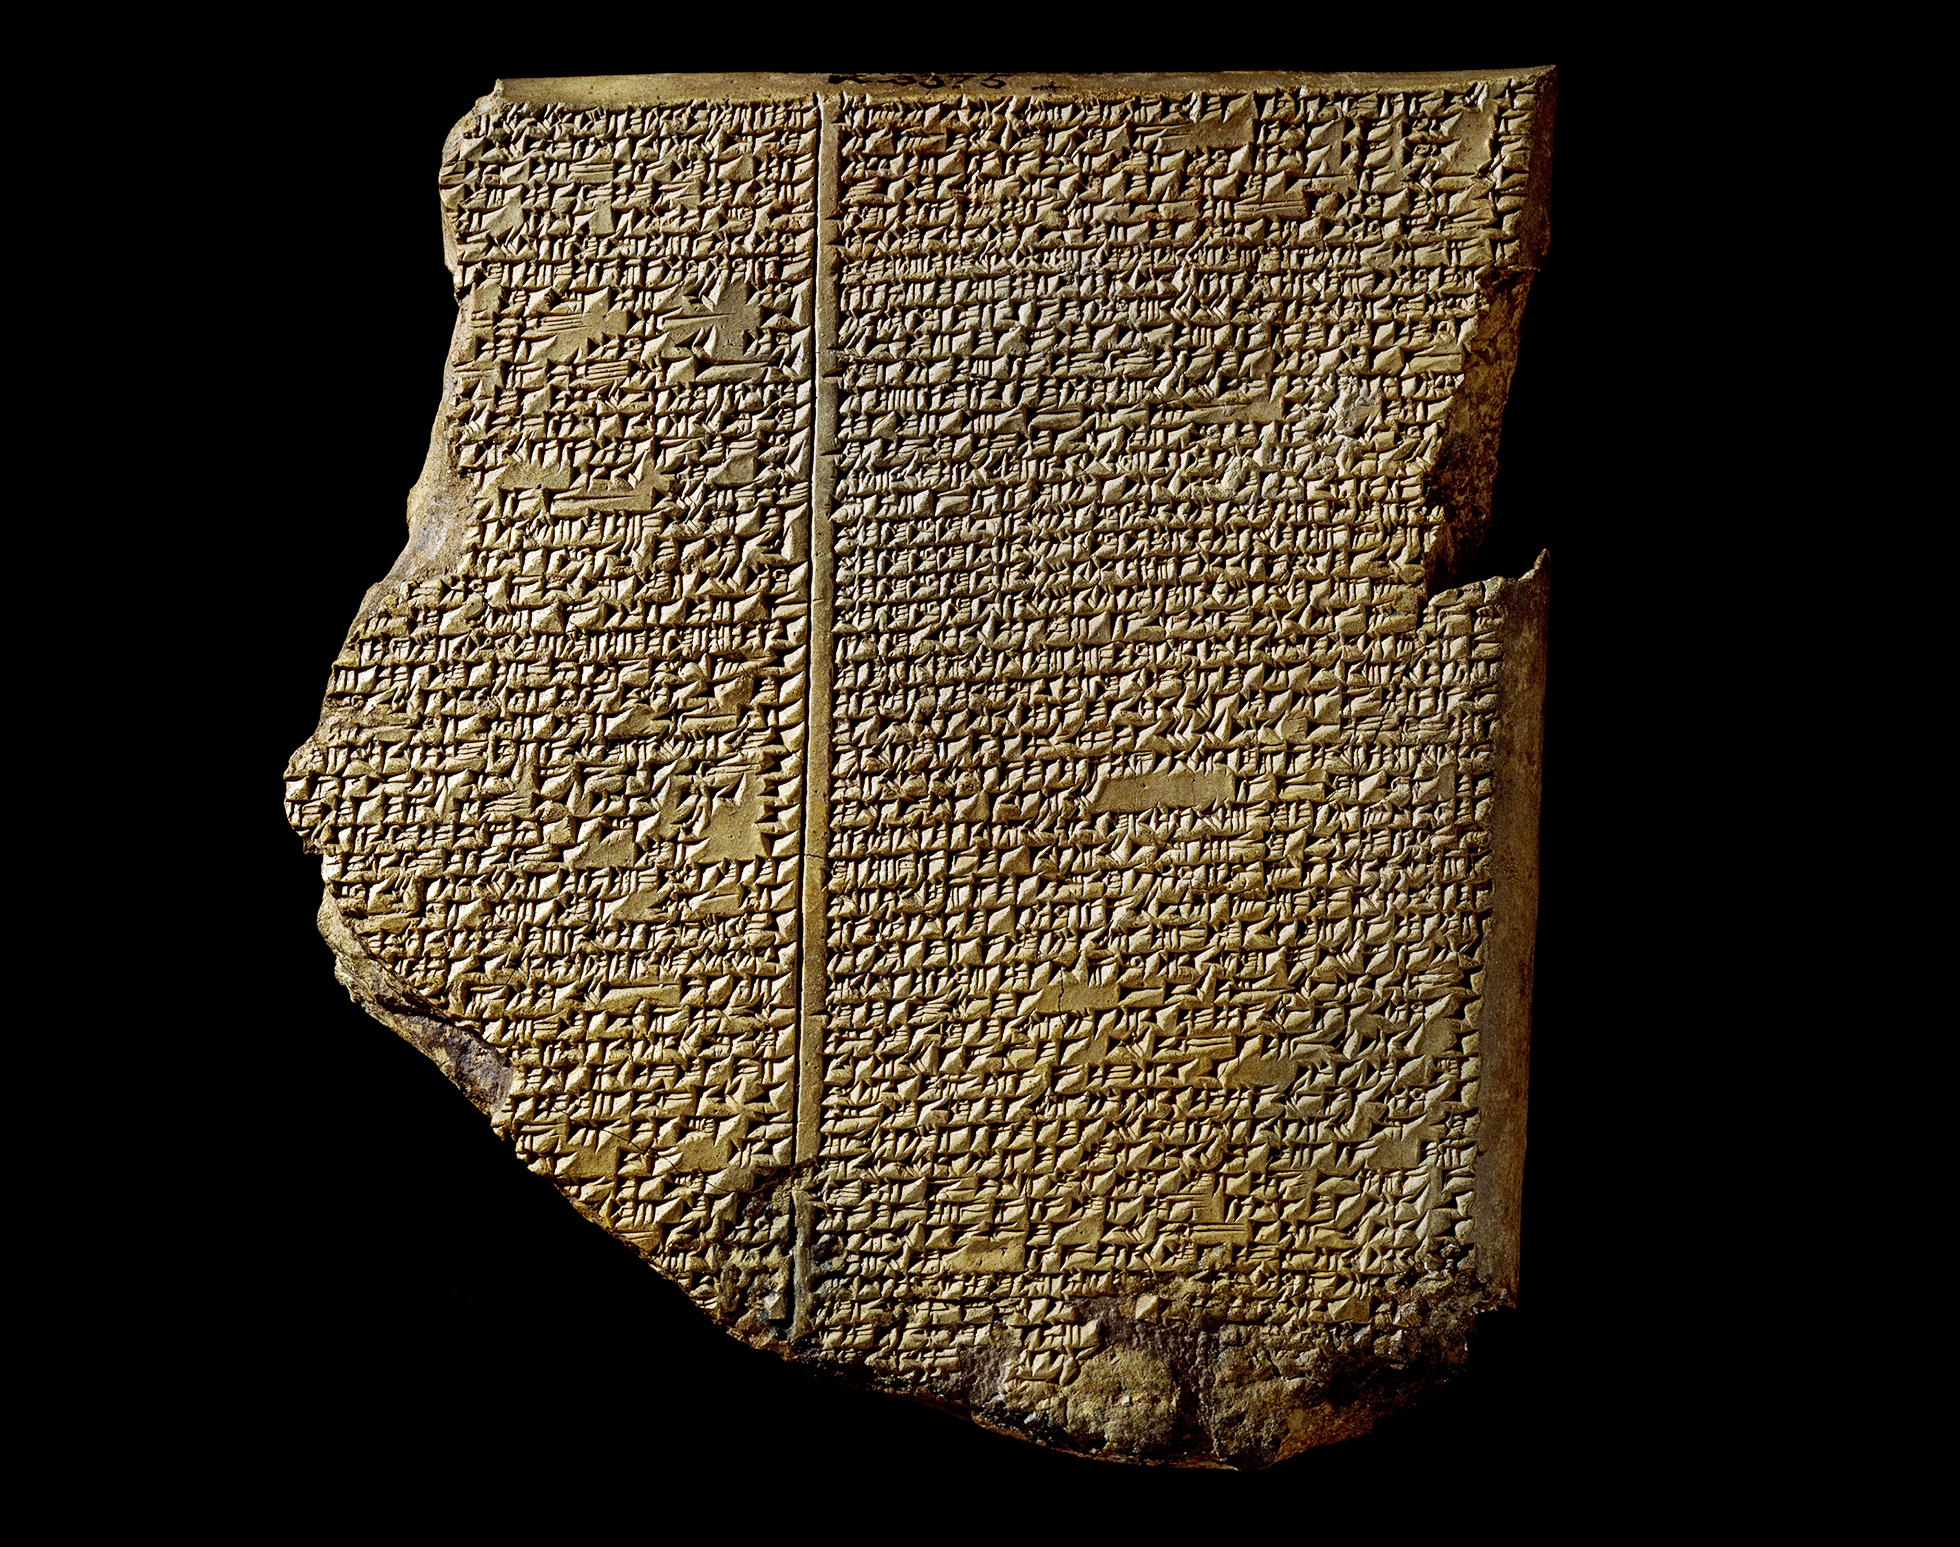 A mid-brown rectangular clay tablet covered with cuneiform script written in two columns, telling the story of the epic of gilgamesh.